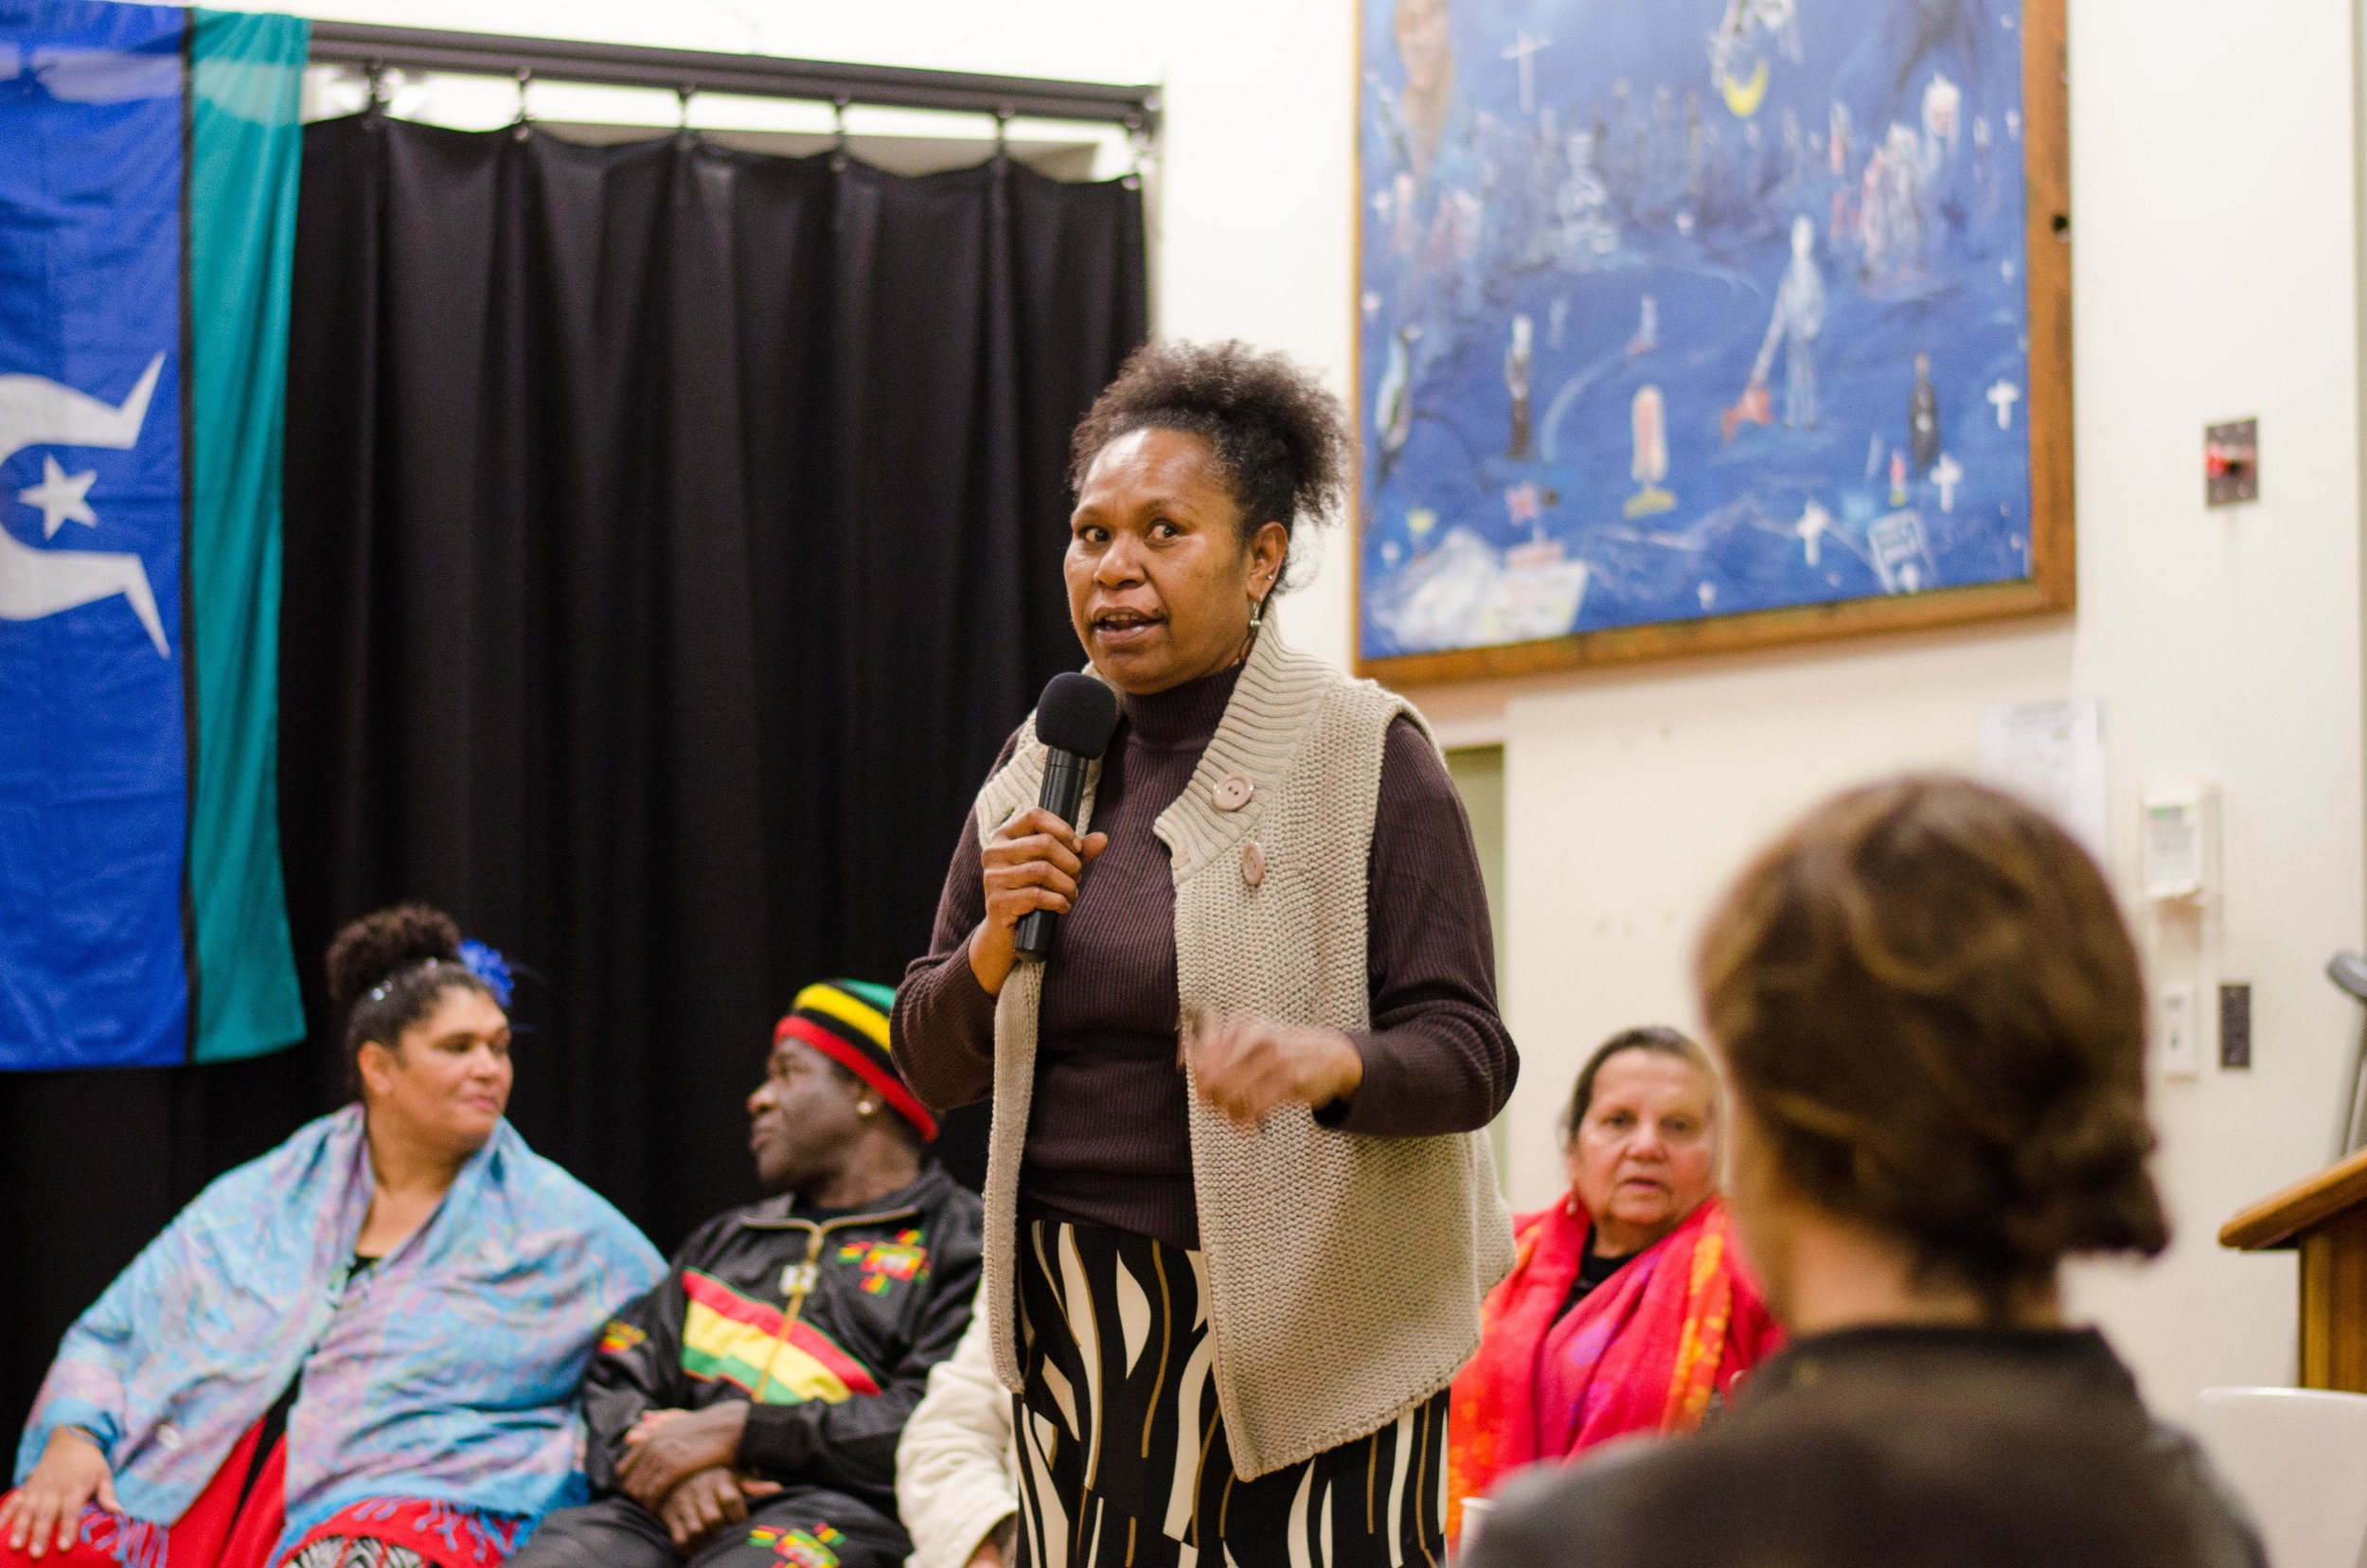 June 3rd Mabo Day at Redfern Community Centre: Aunty Agnes Ware sharing her story